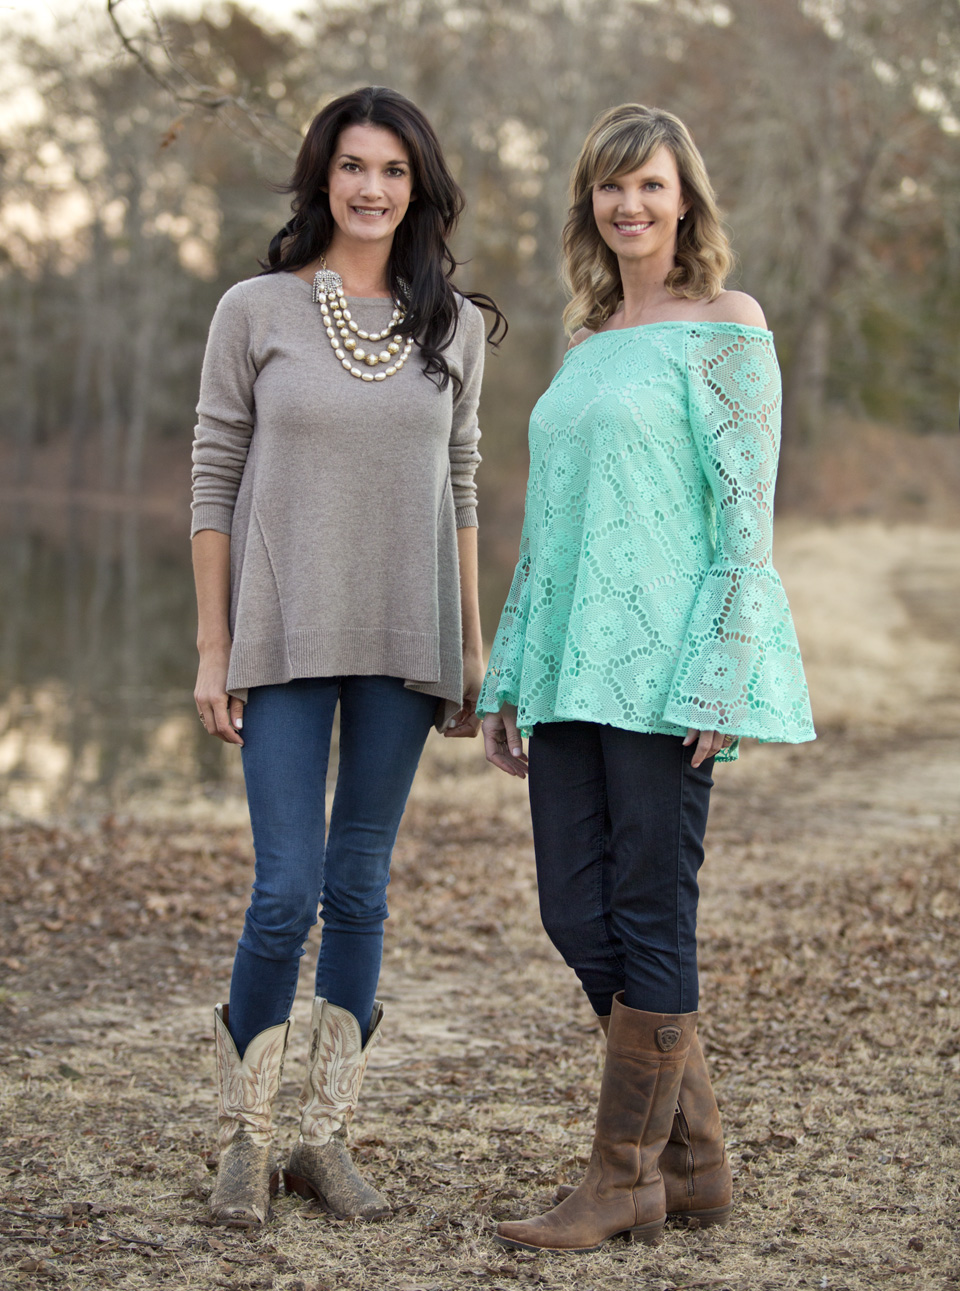 30A South Walton Stephanie and Missy 1 30As Southern Fashion House Debuts Clothing Line with Missy Robertson of A&E's Duck Dynasty